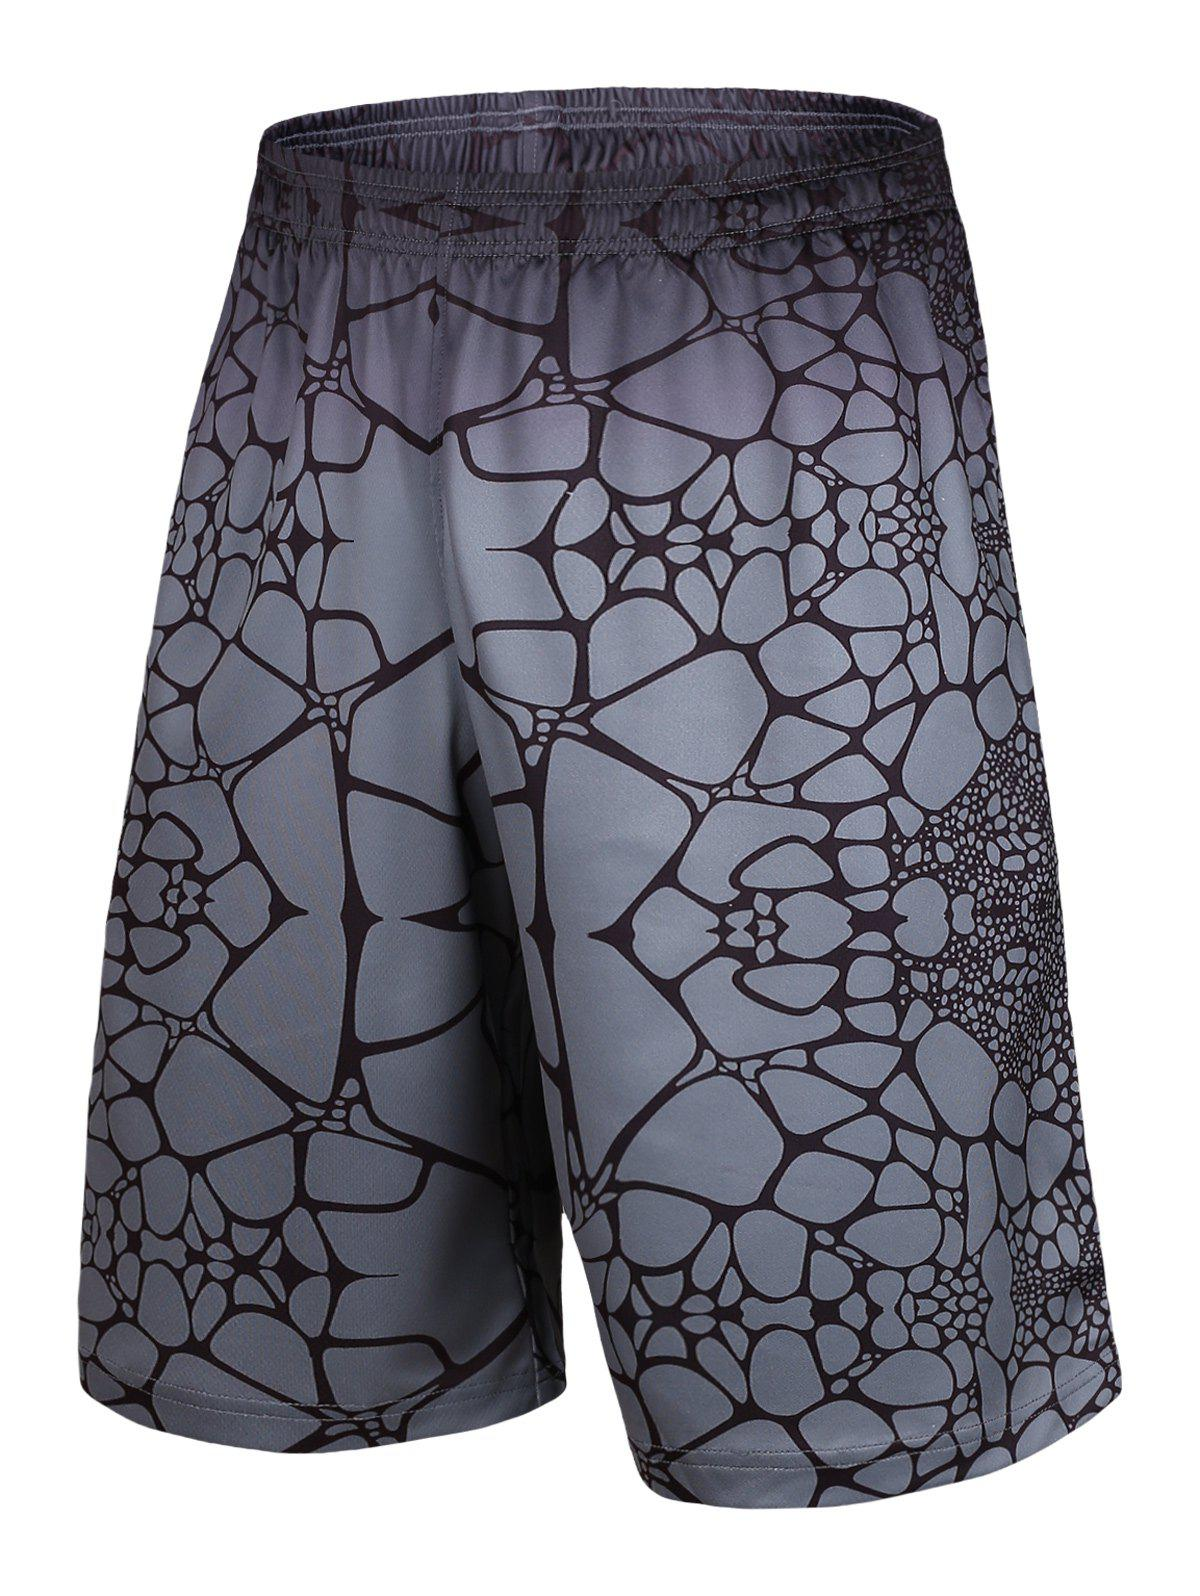 Elastic Waist Irregular Geometric Print Basketball Shorts - GRAY M